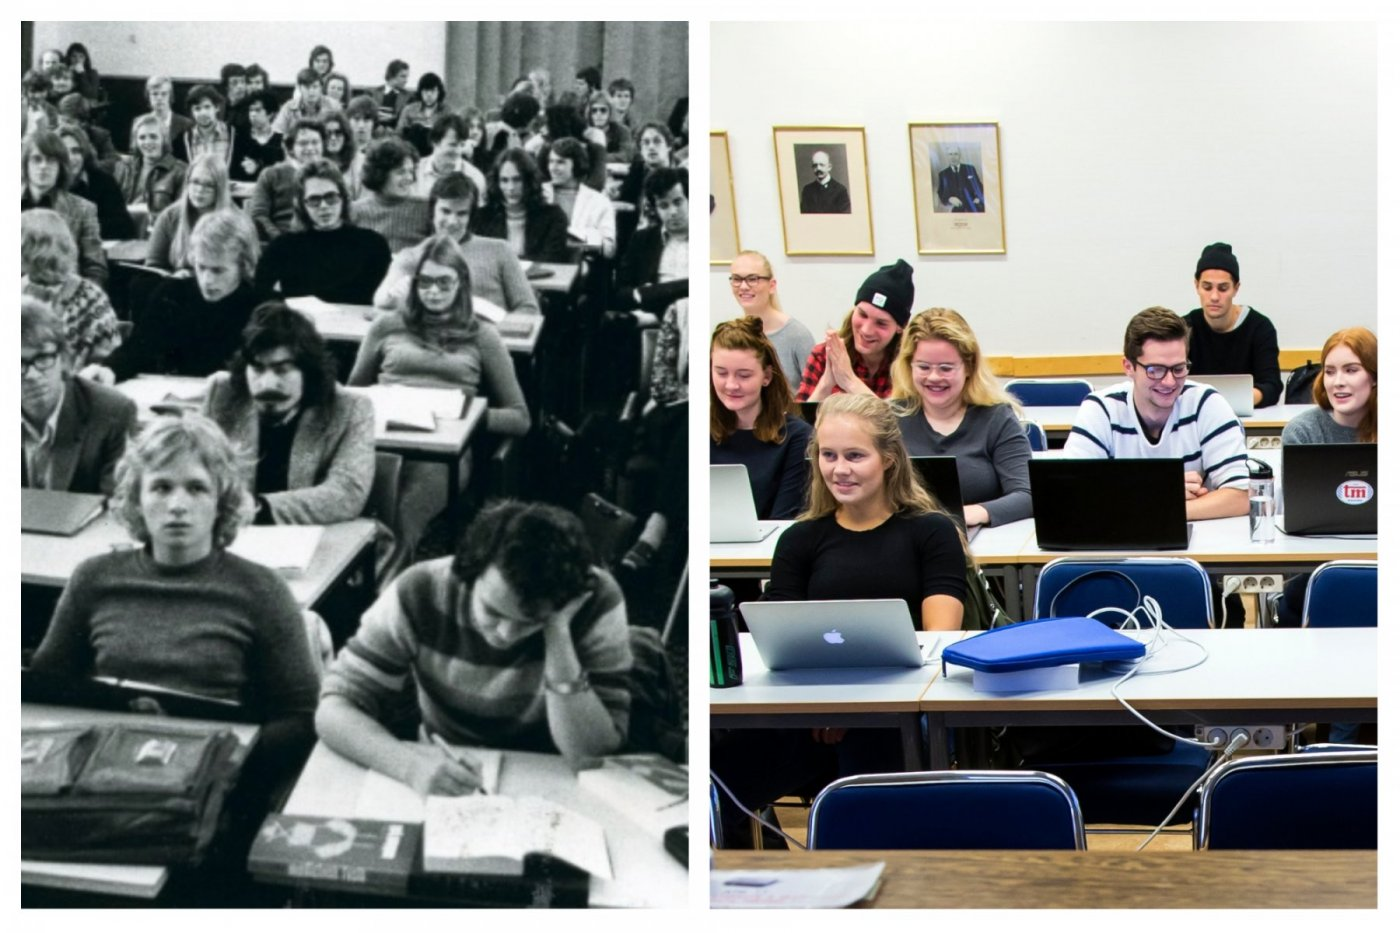 Univeristy students now and in the past